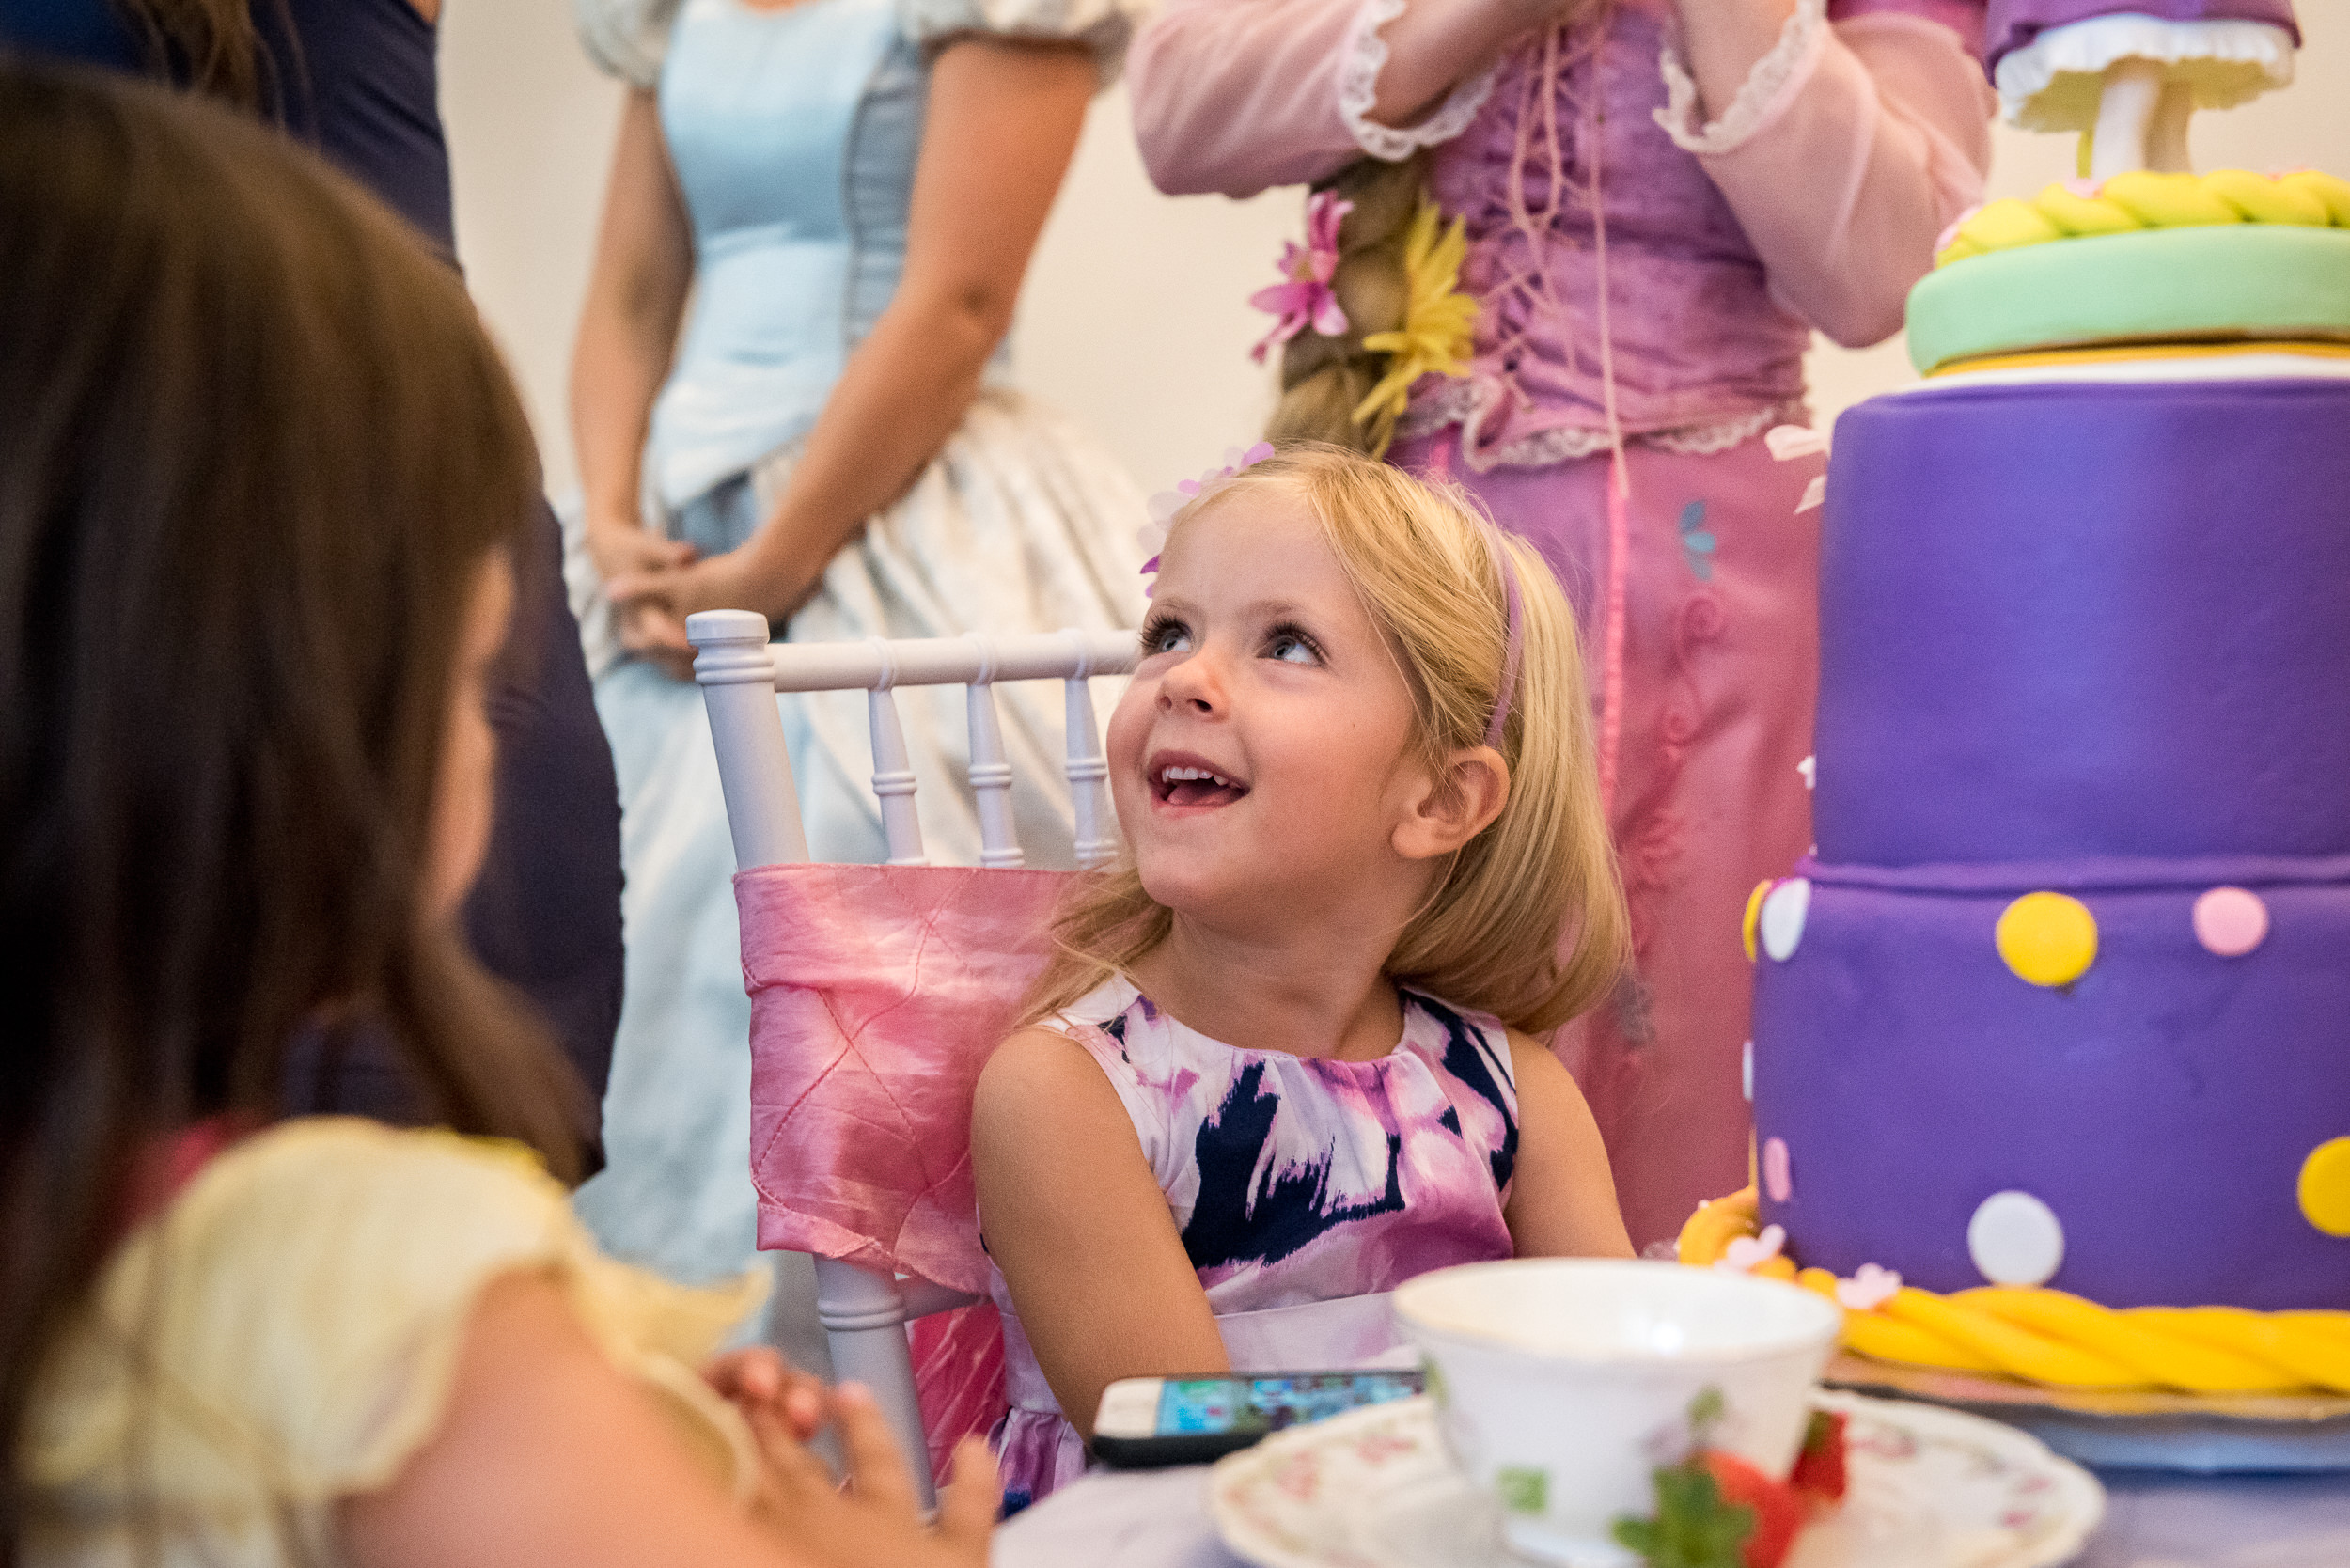 Documentary Family Photography in Denver, Colorado - birthday party girl princess tea party with cake at Wands and Wishes Occasions